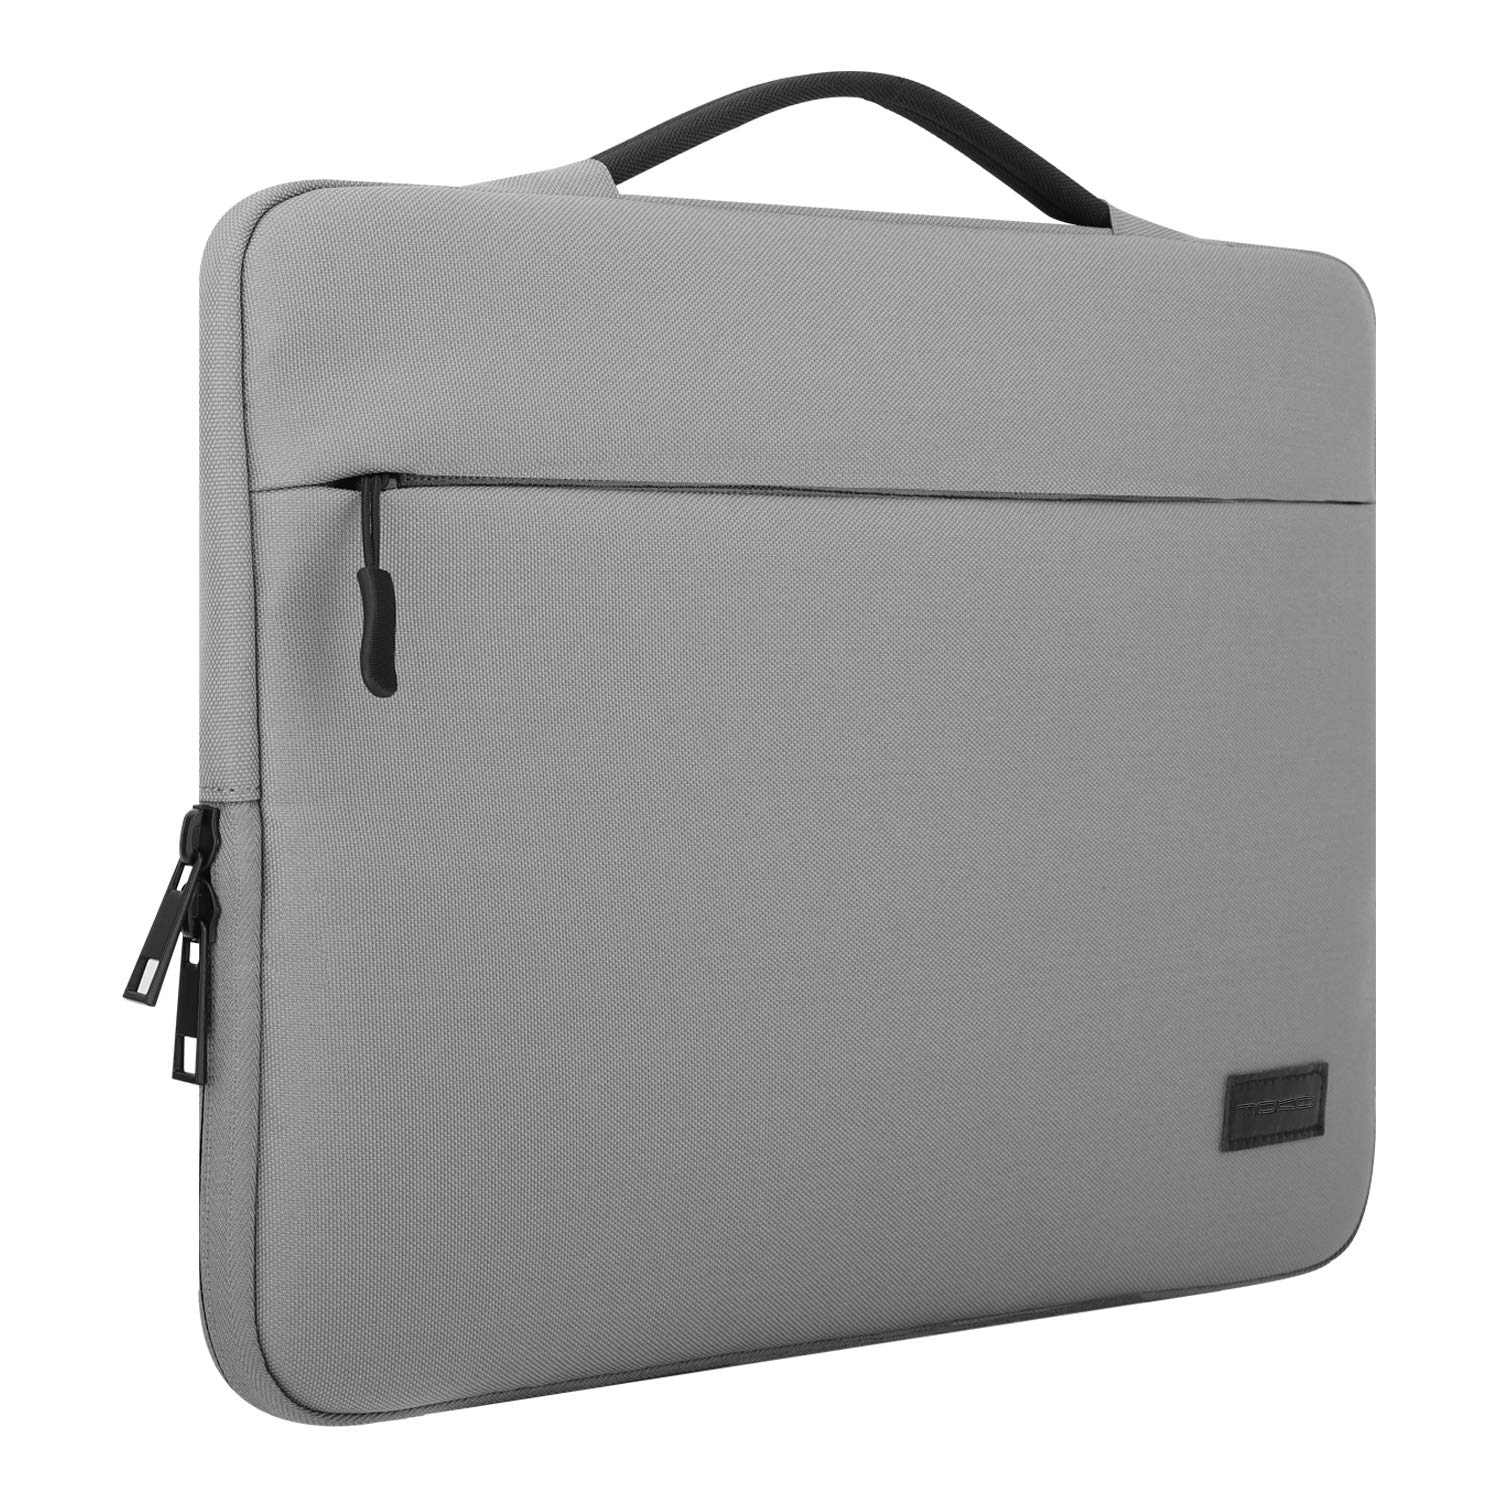 MoKo 13-13.5 Inch Laptop Sleeve Bag, Oxford Cloth Carry Case Cover Compatible with 13.3 MacBook Pro (2018 & 2017 & 2016) / MacBook Air, Surface Book 13.5, Protective Handbag for 13 Notebook, Gray Surface Book 13.5